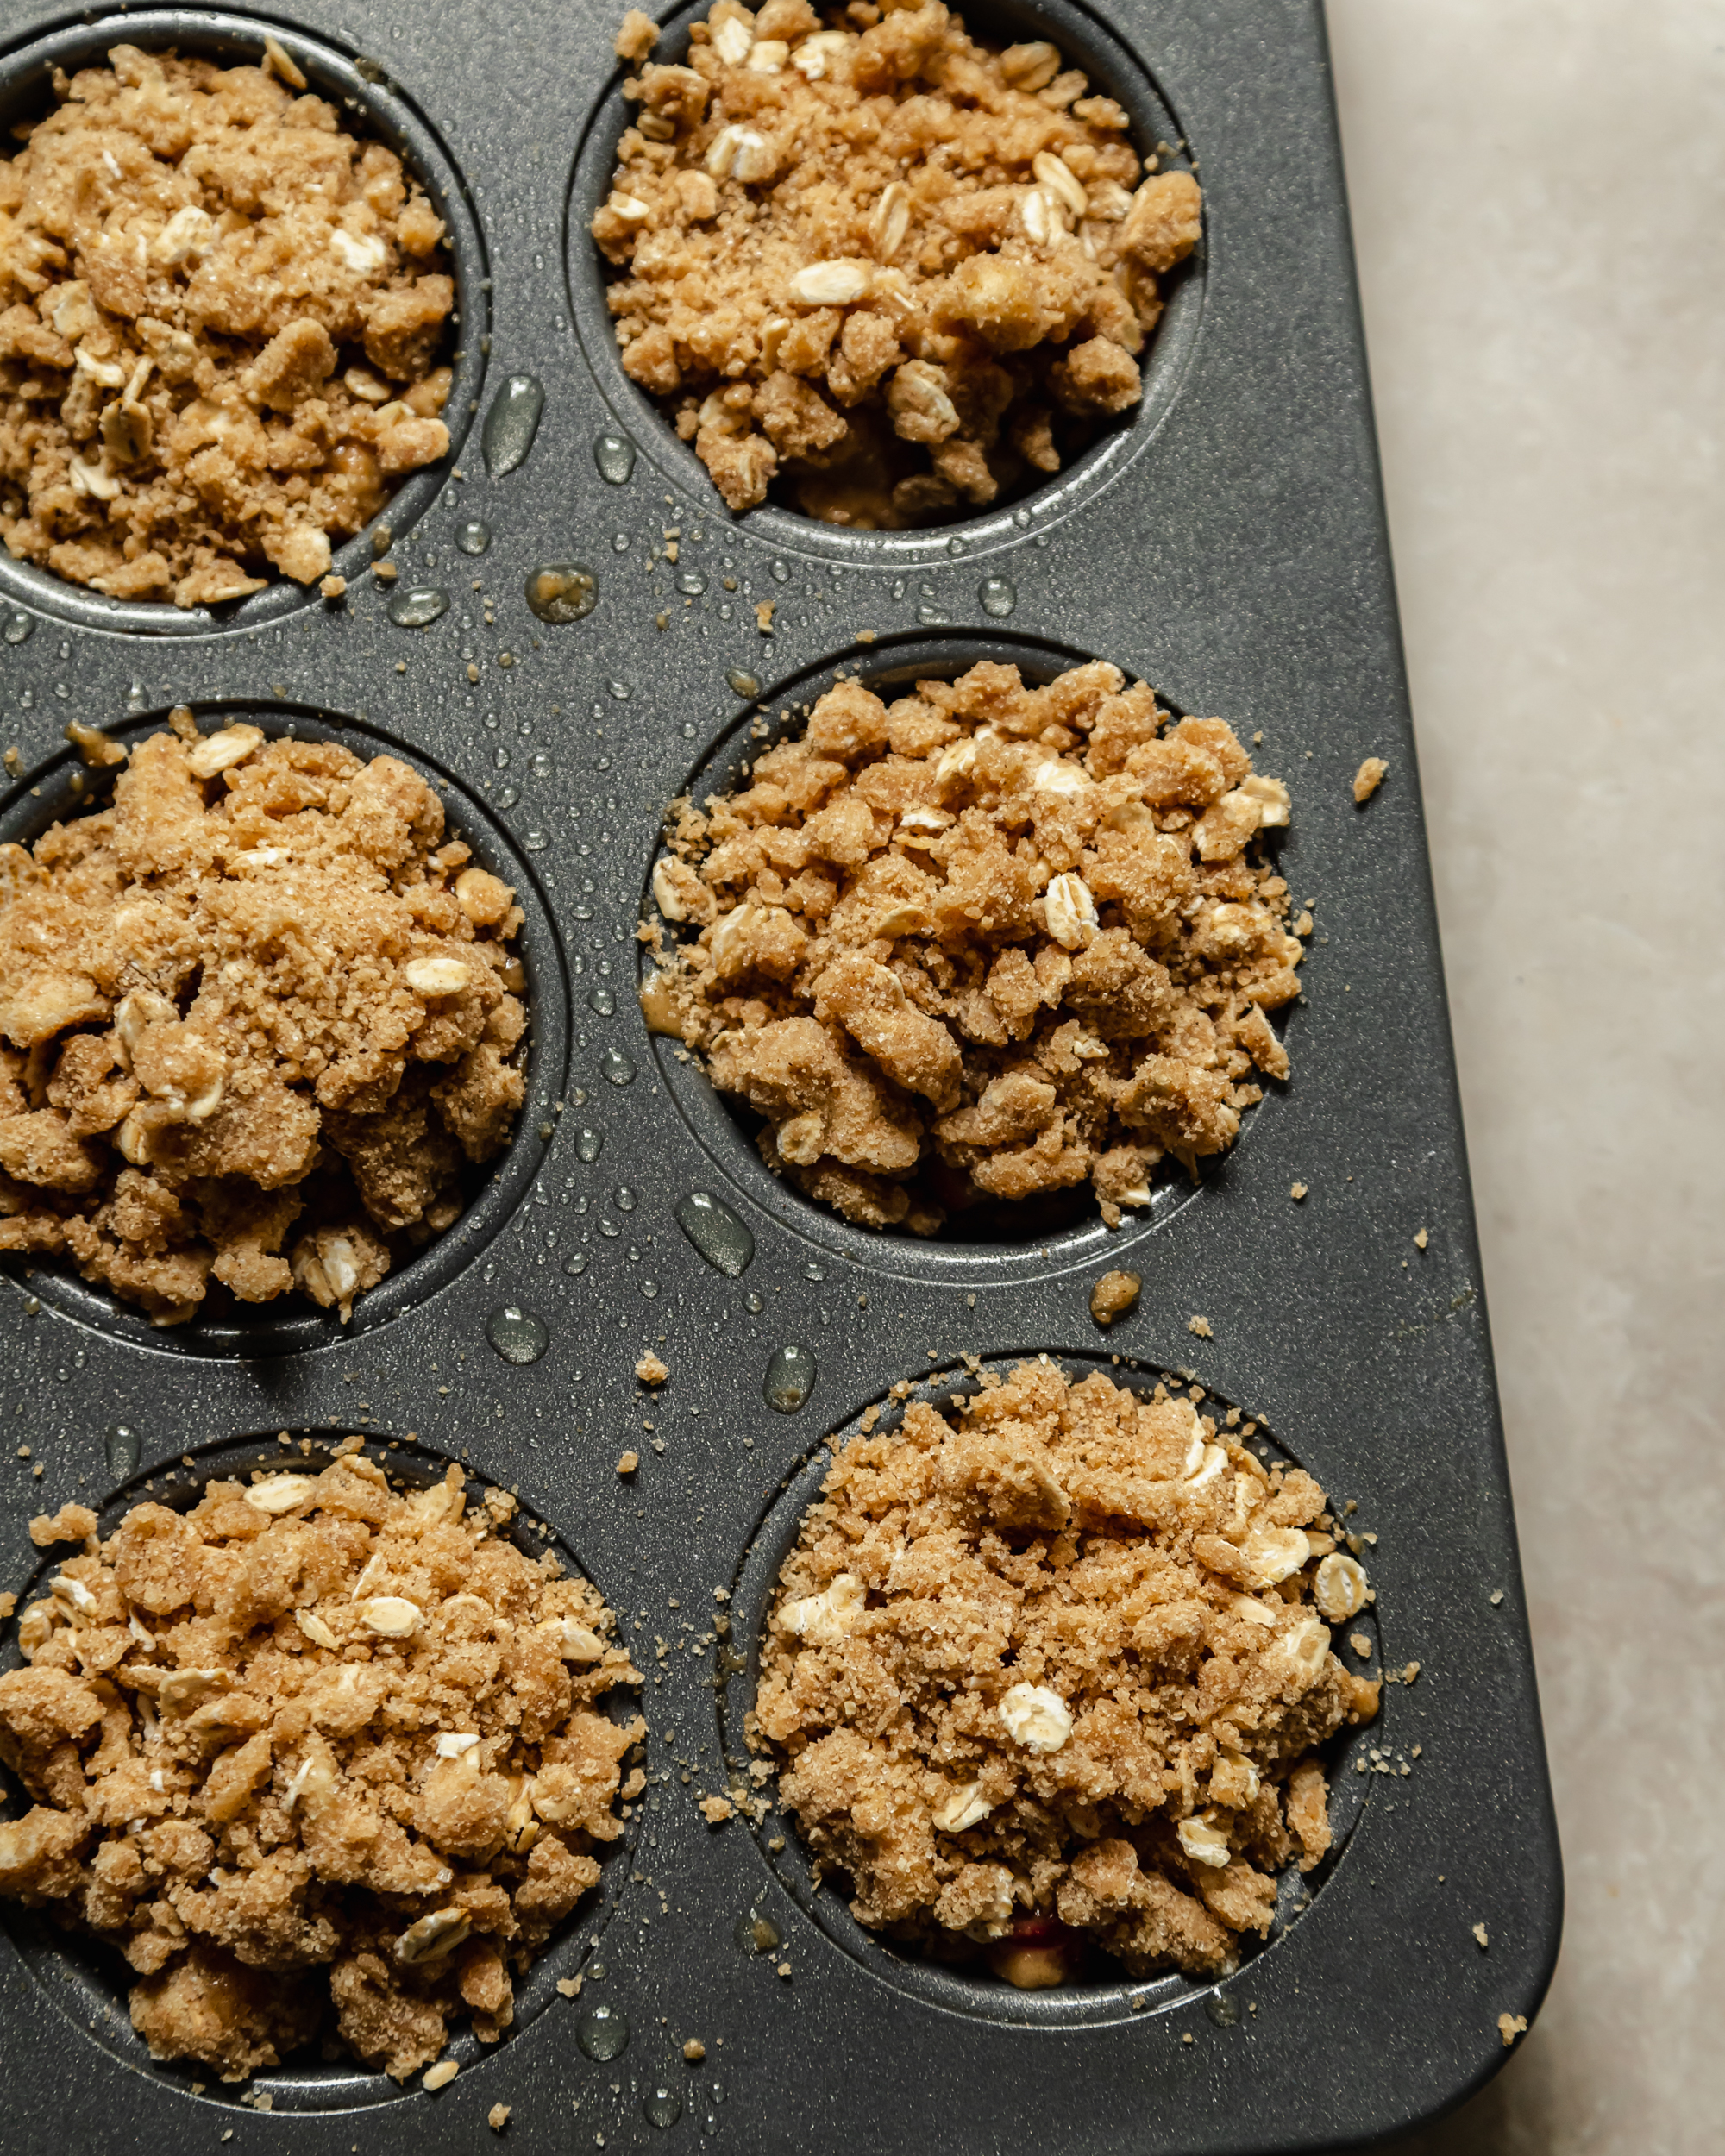 Image shows muffins topped with a crumble topping pre-baking.